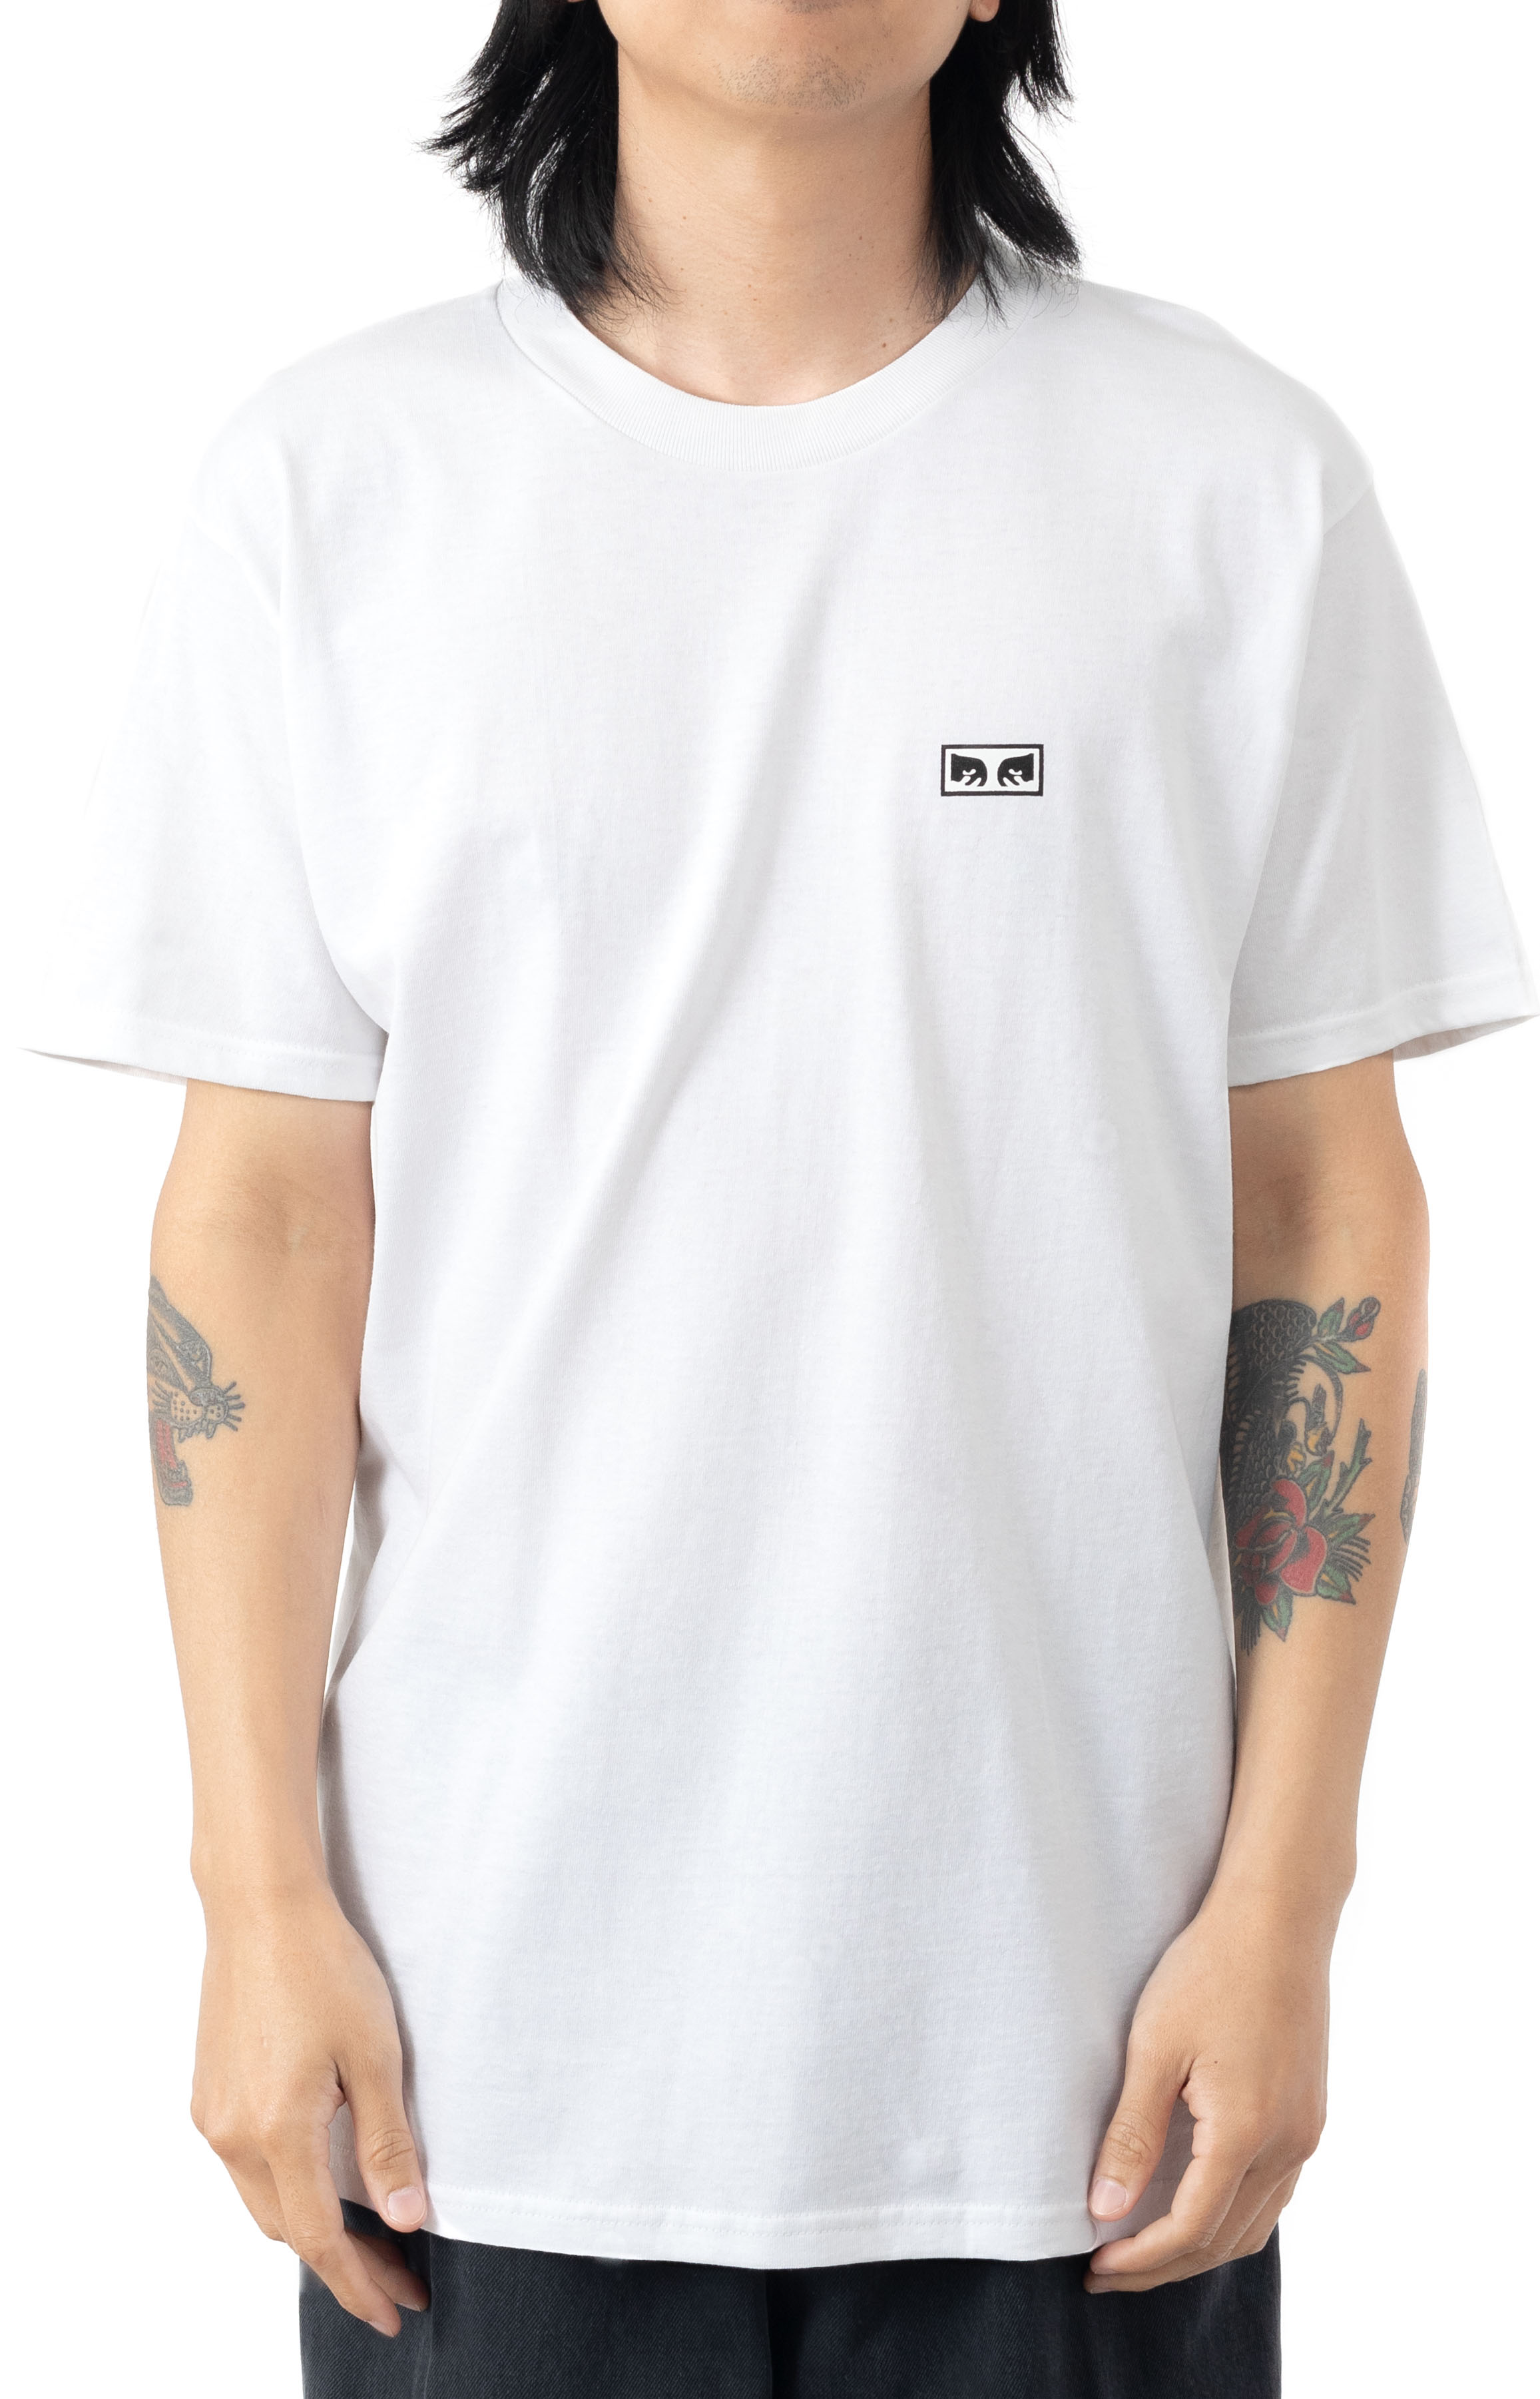 Be Kind T-Shirt - White  2